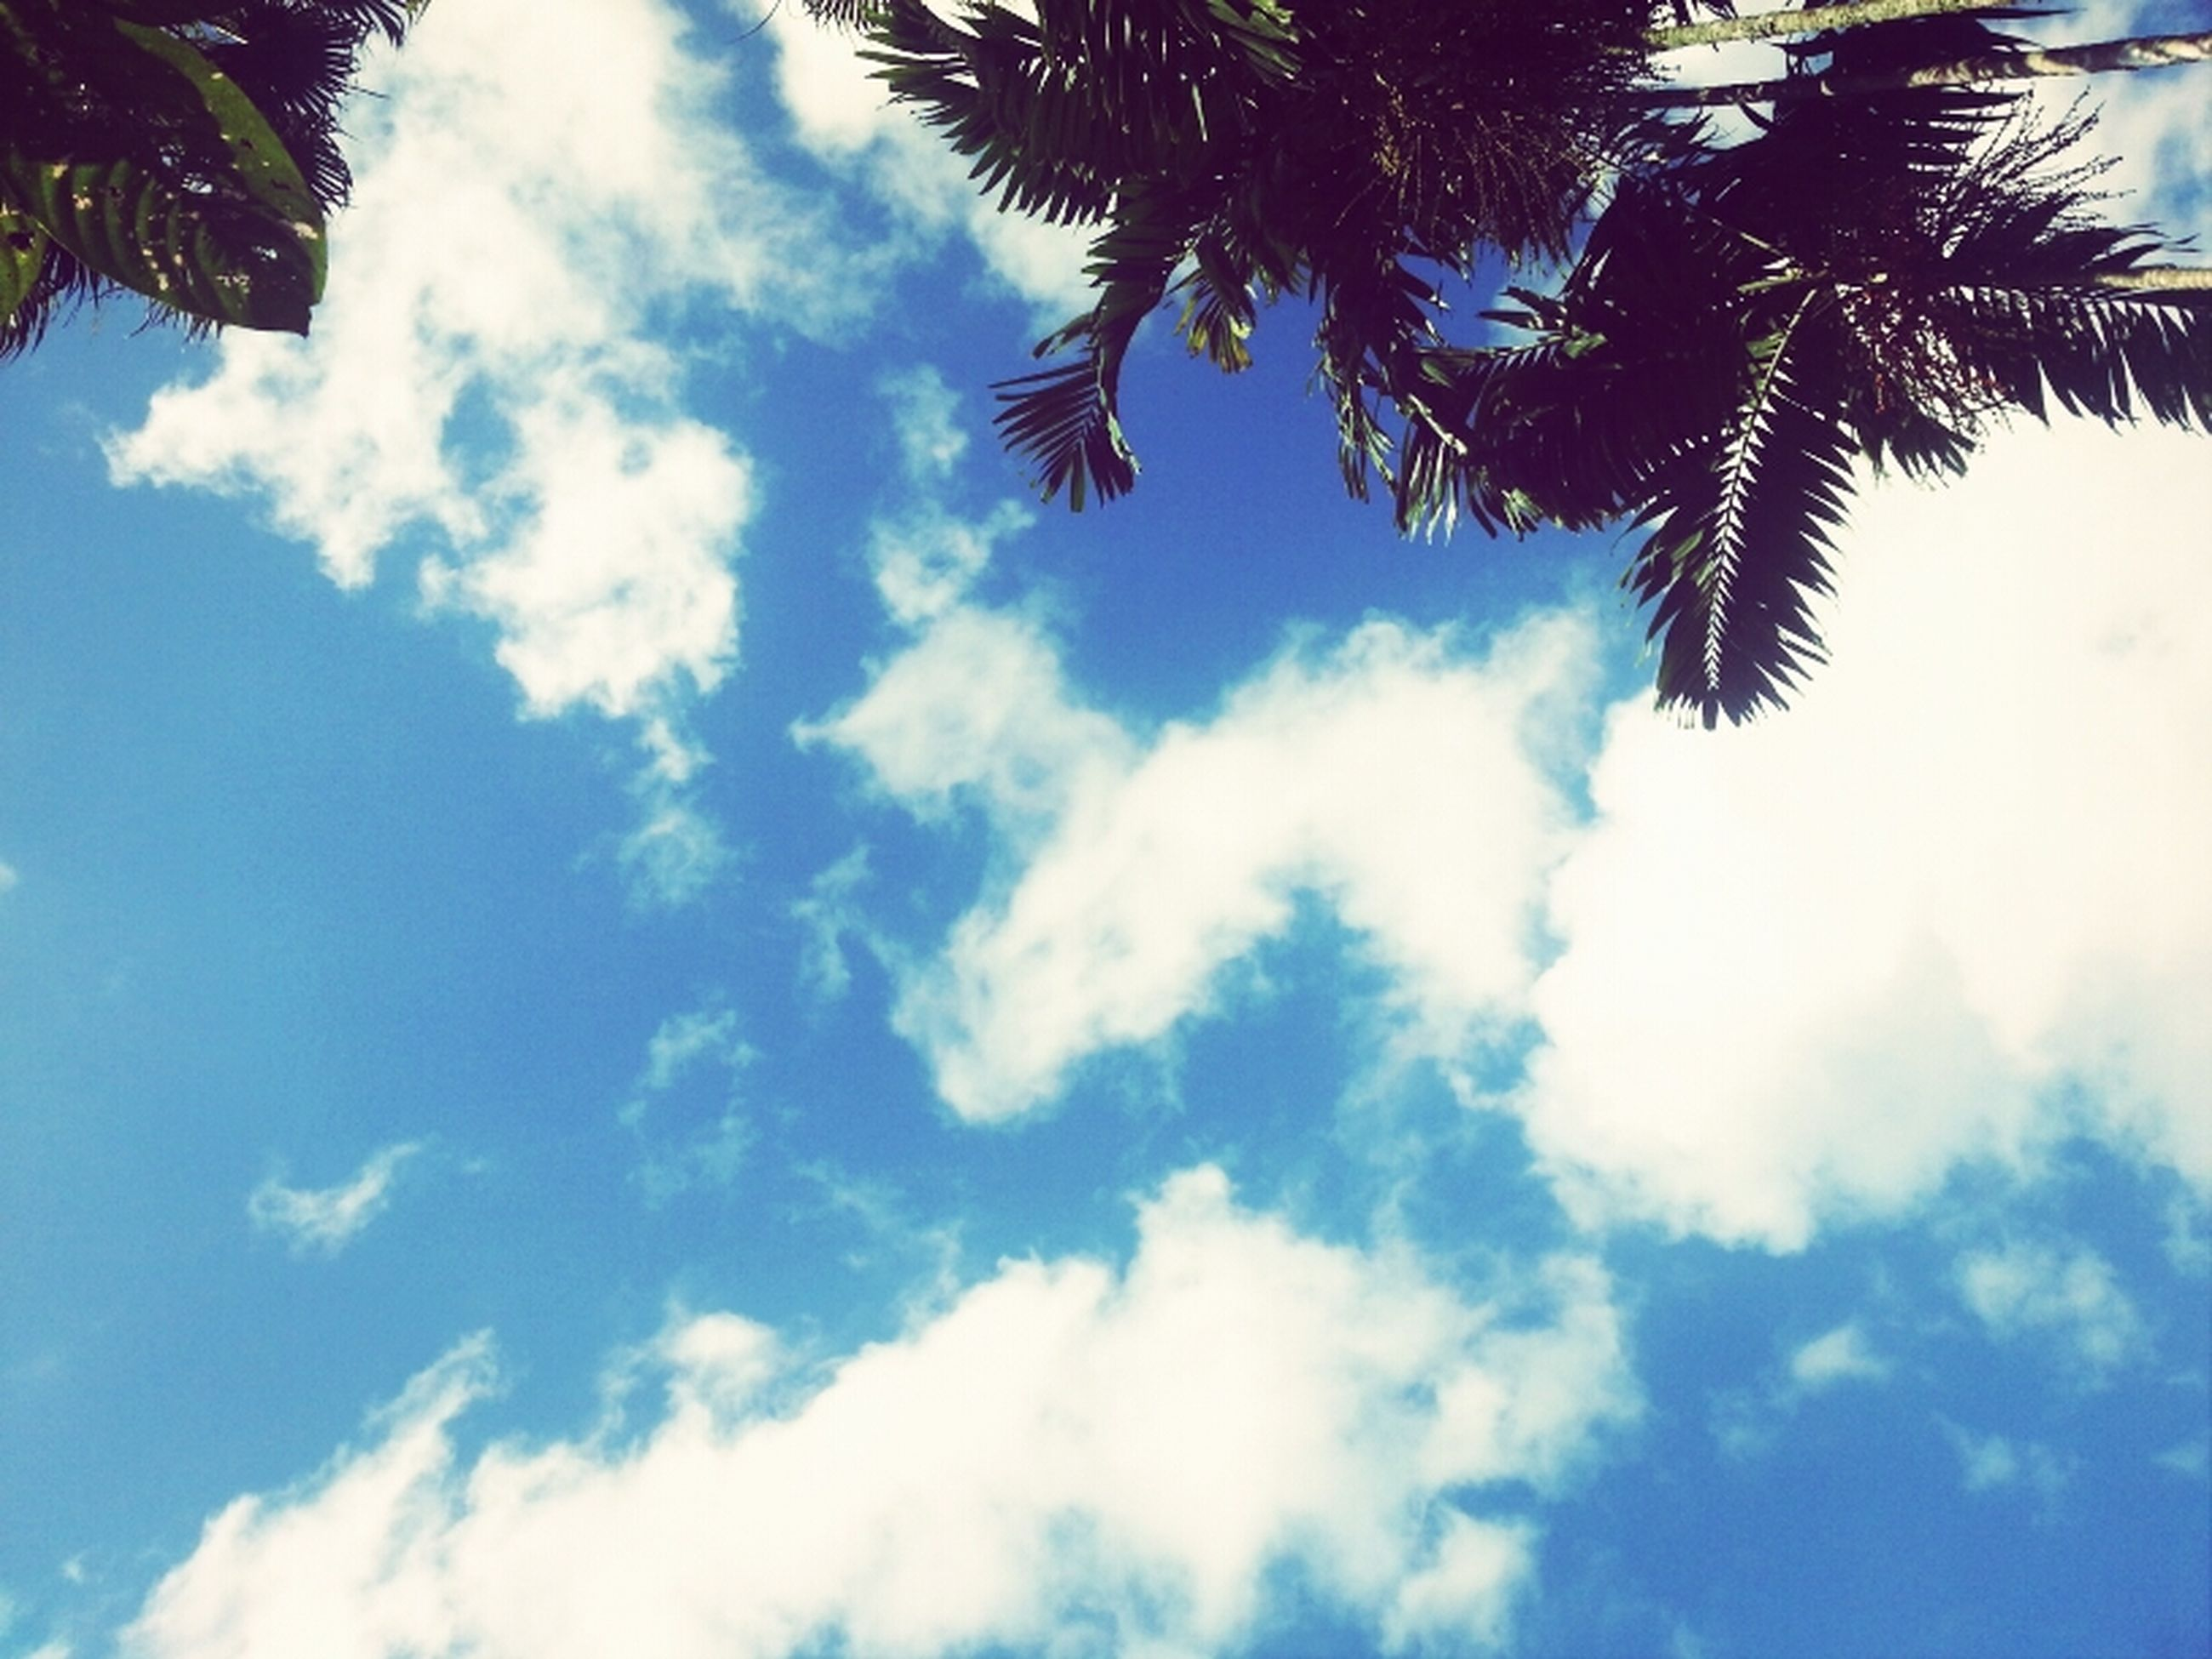 sky, low angle view, tree, cloud - sky, blue, tranquility, beauty in nature, palm tree, cloud, nature, scenics, tranquil scene, cloudy, growth, day, outdoors, no people, idyllic, branch, sunlight